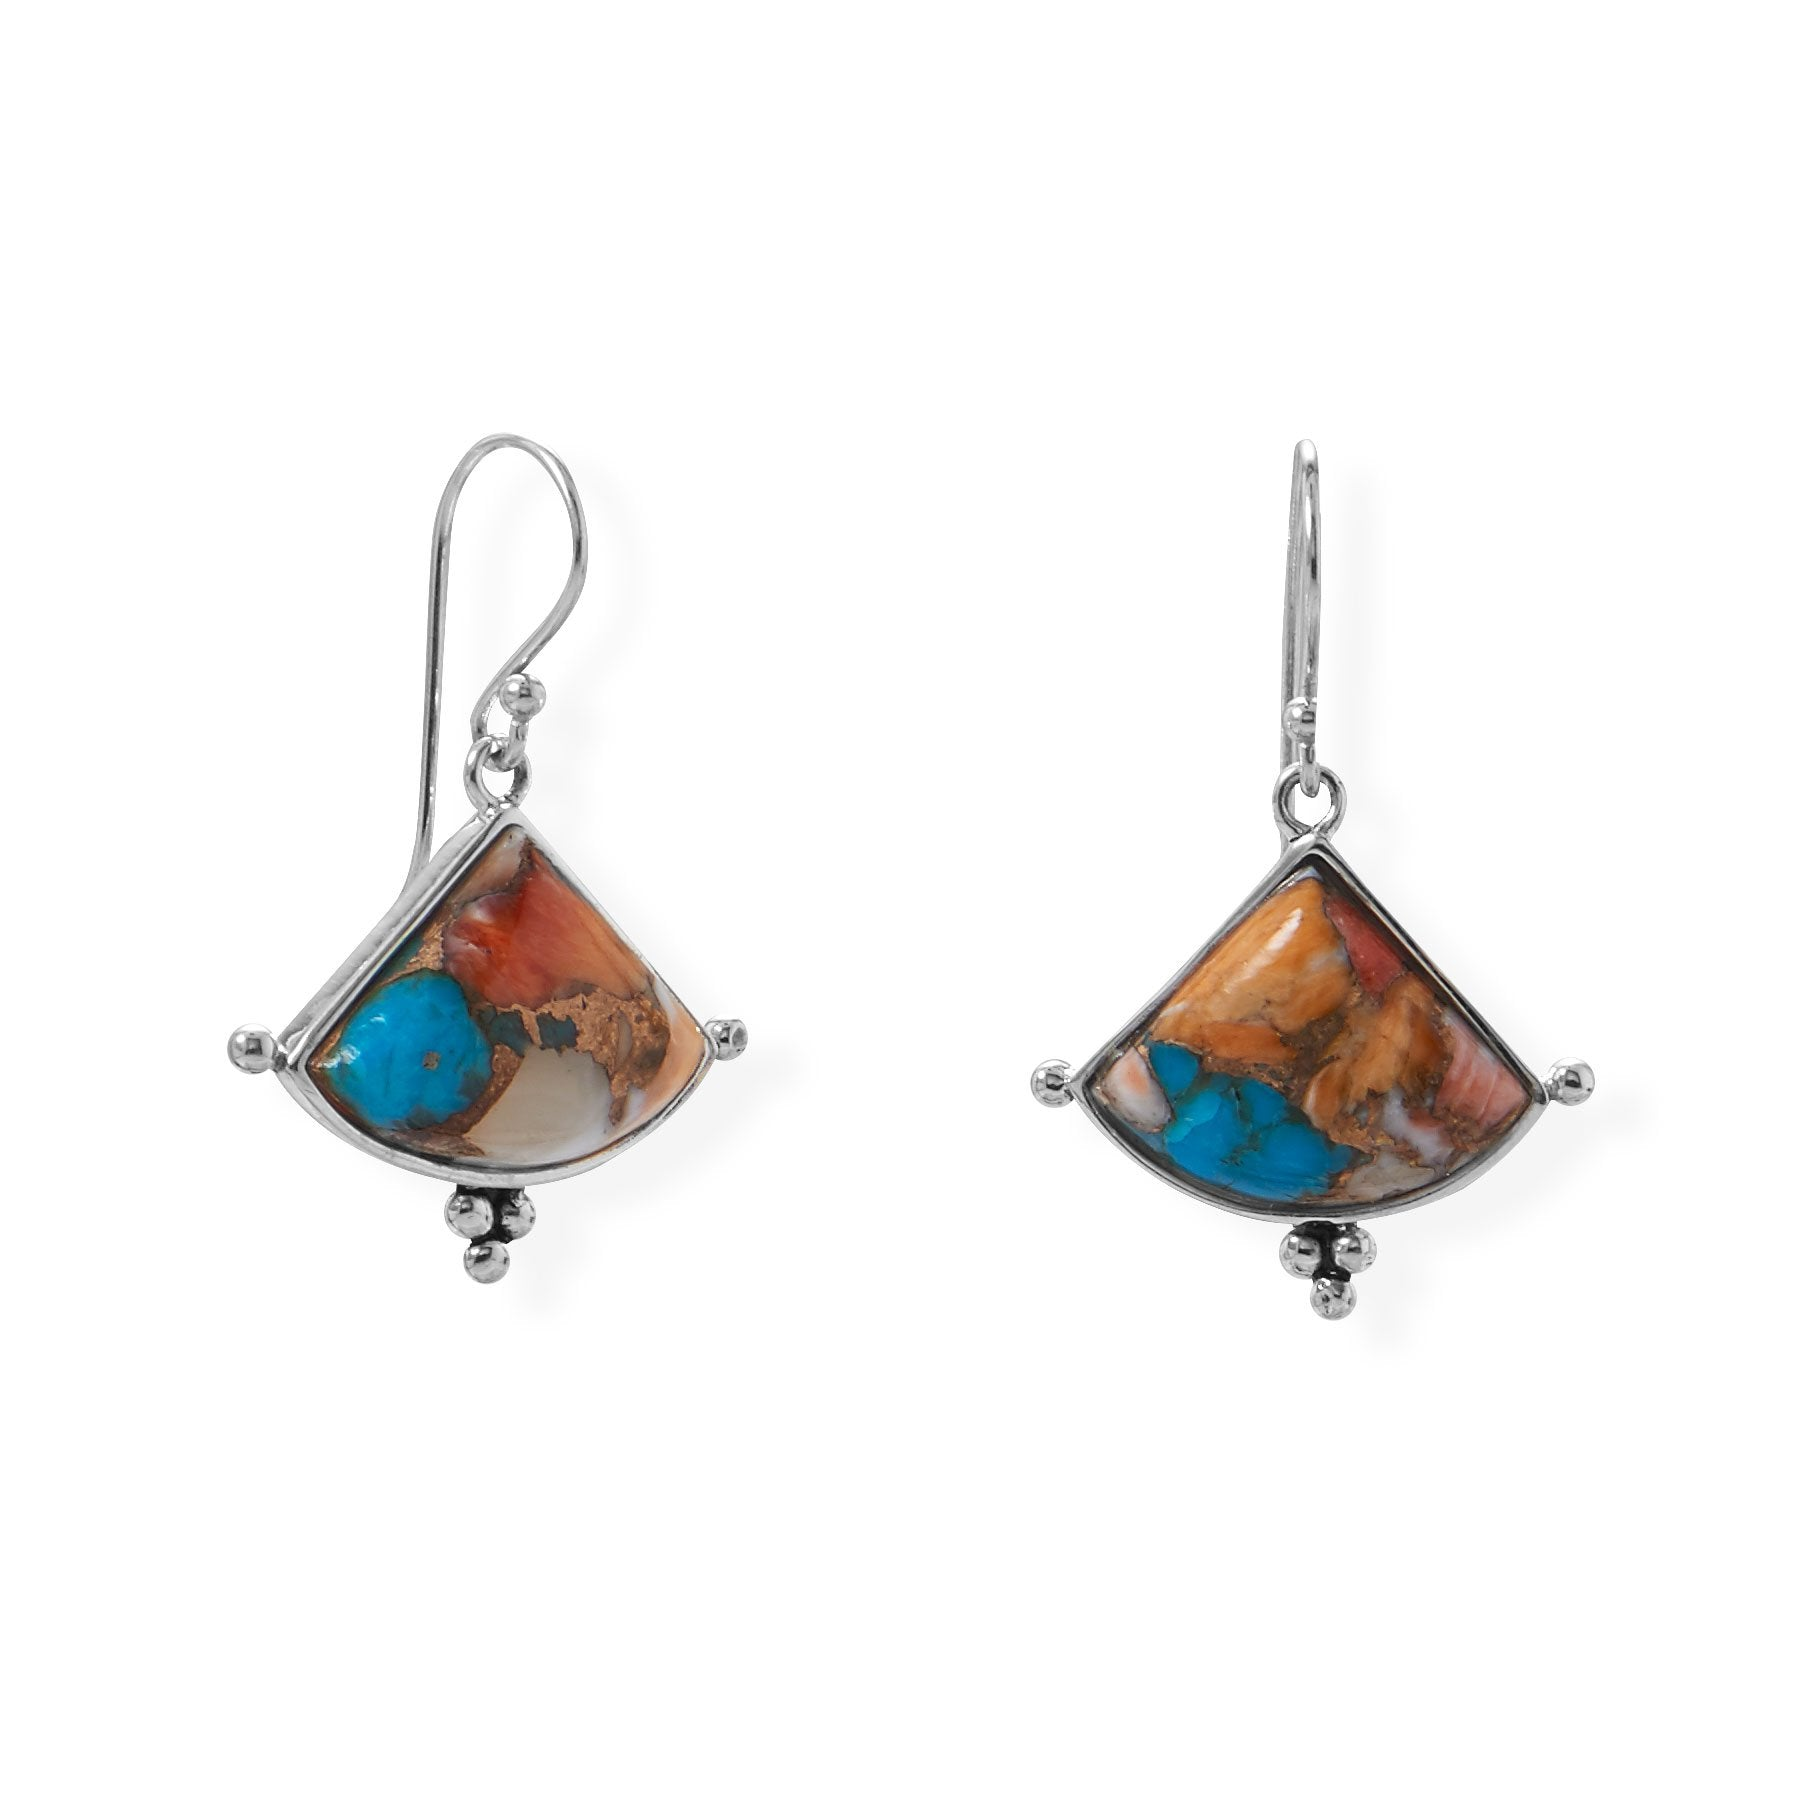 925 Sterling Silver Spiny Oyster and Turquoise Triangle Shaped Earrings